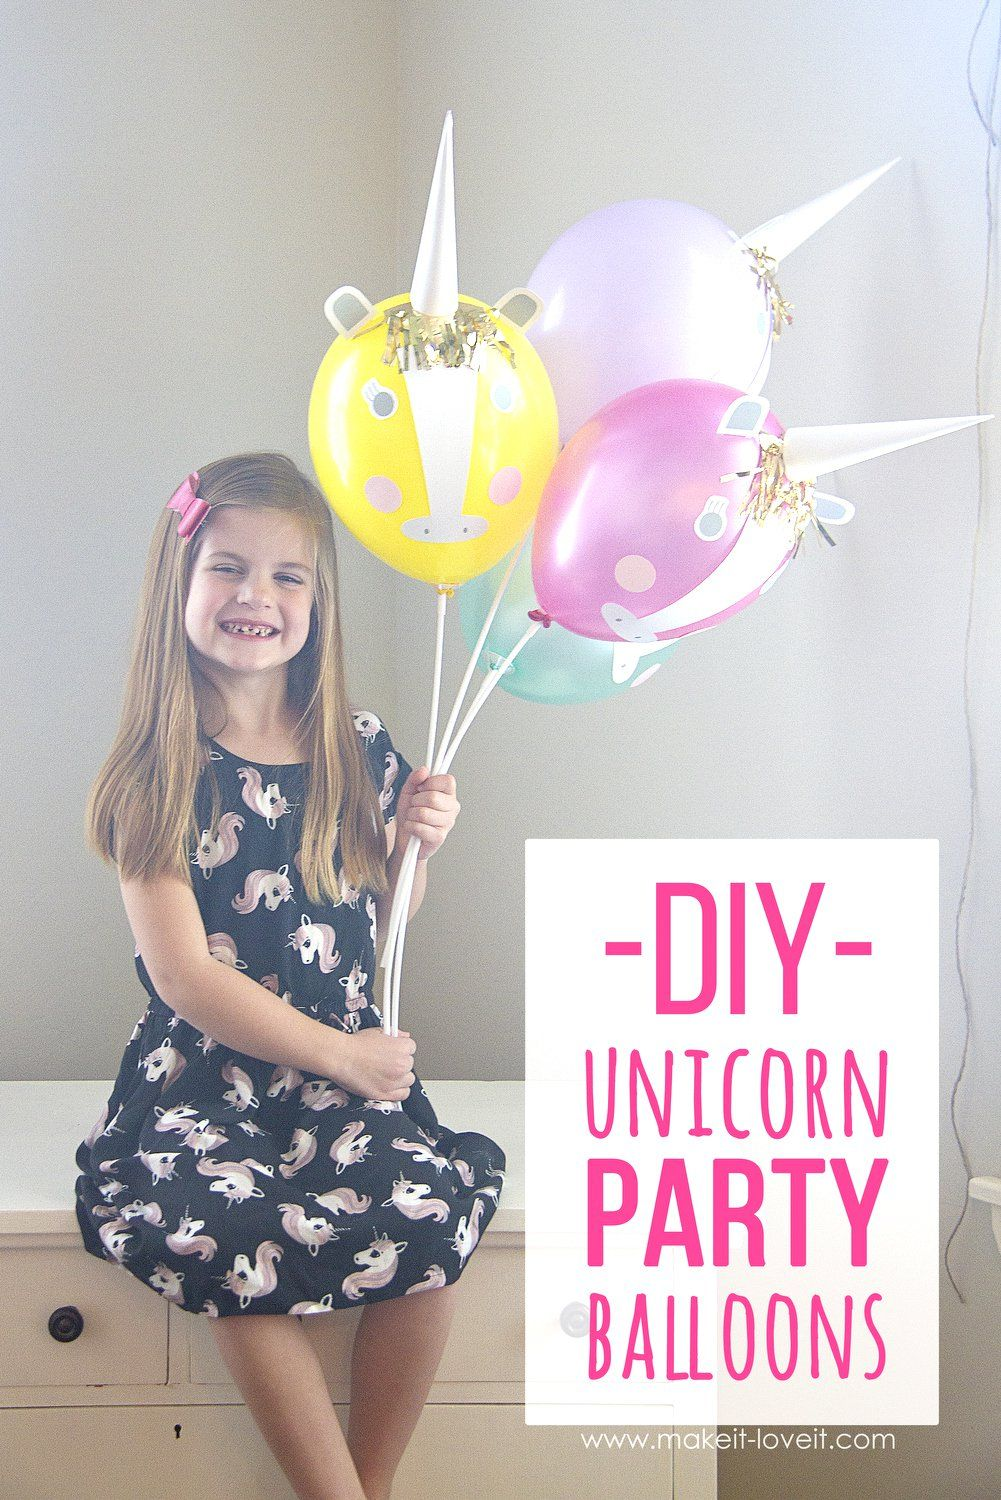 DIY Unicorn Party Balloons